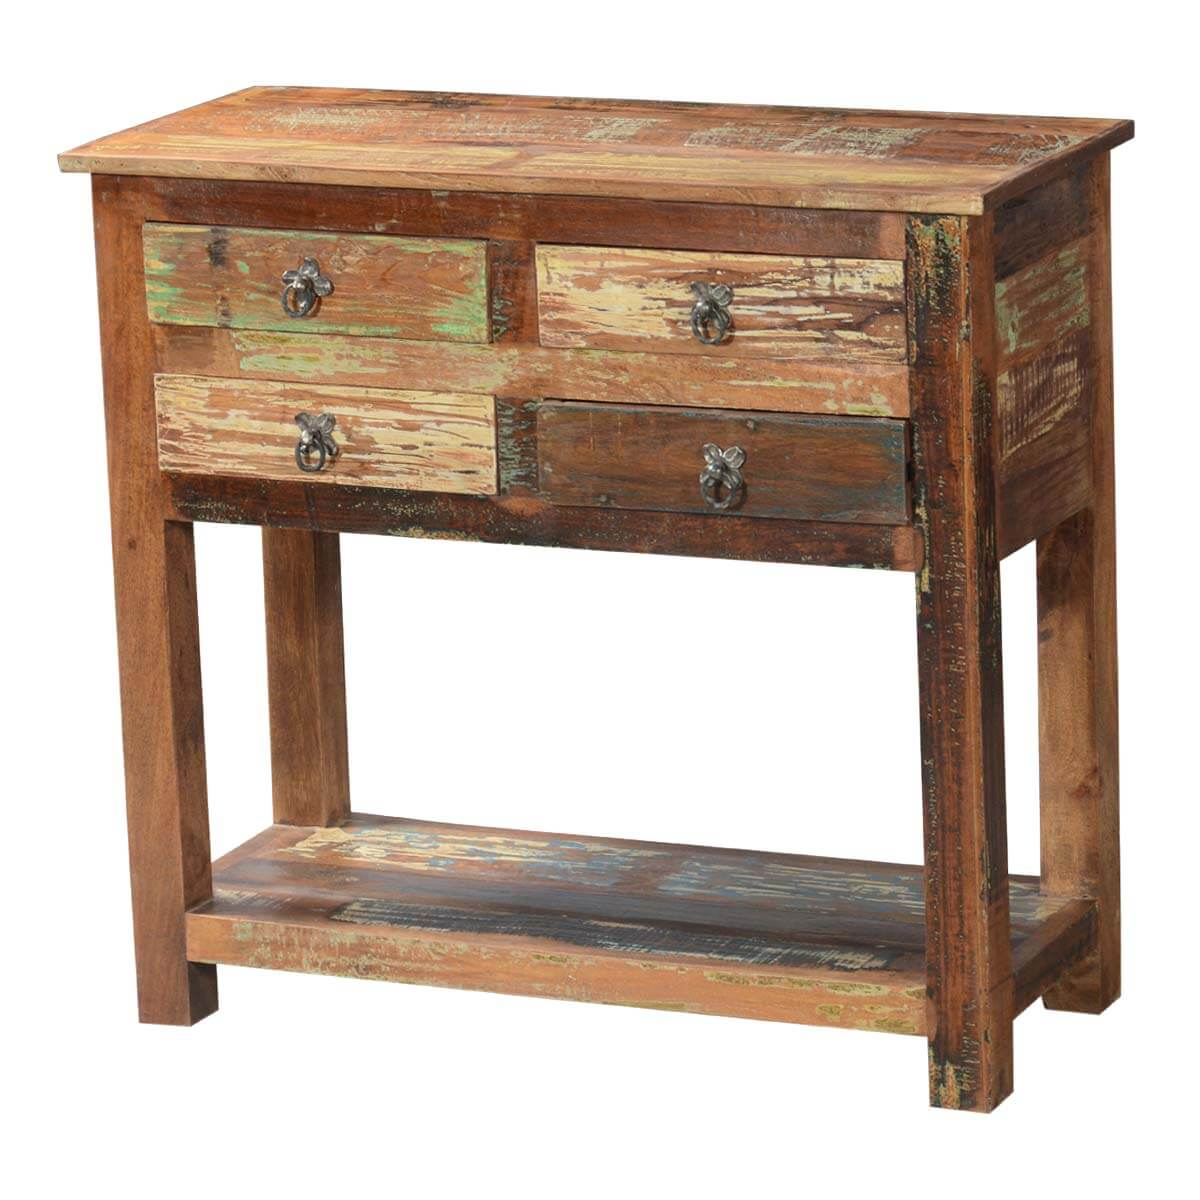 Rustic Narrow Foyer Table : Ashland rustic reclaimed wood drawer hallway console table